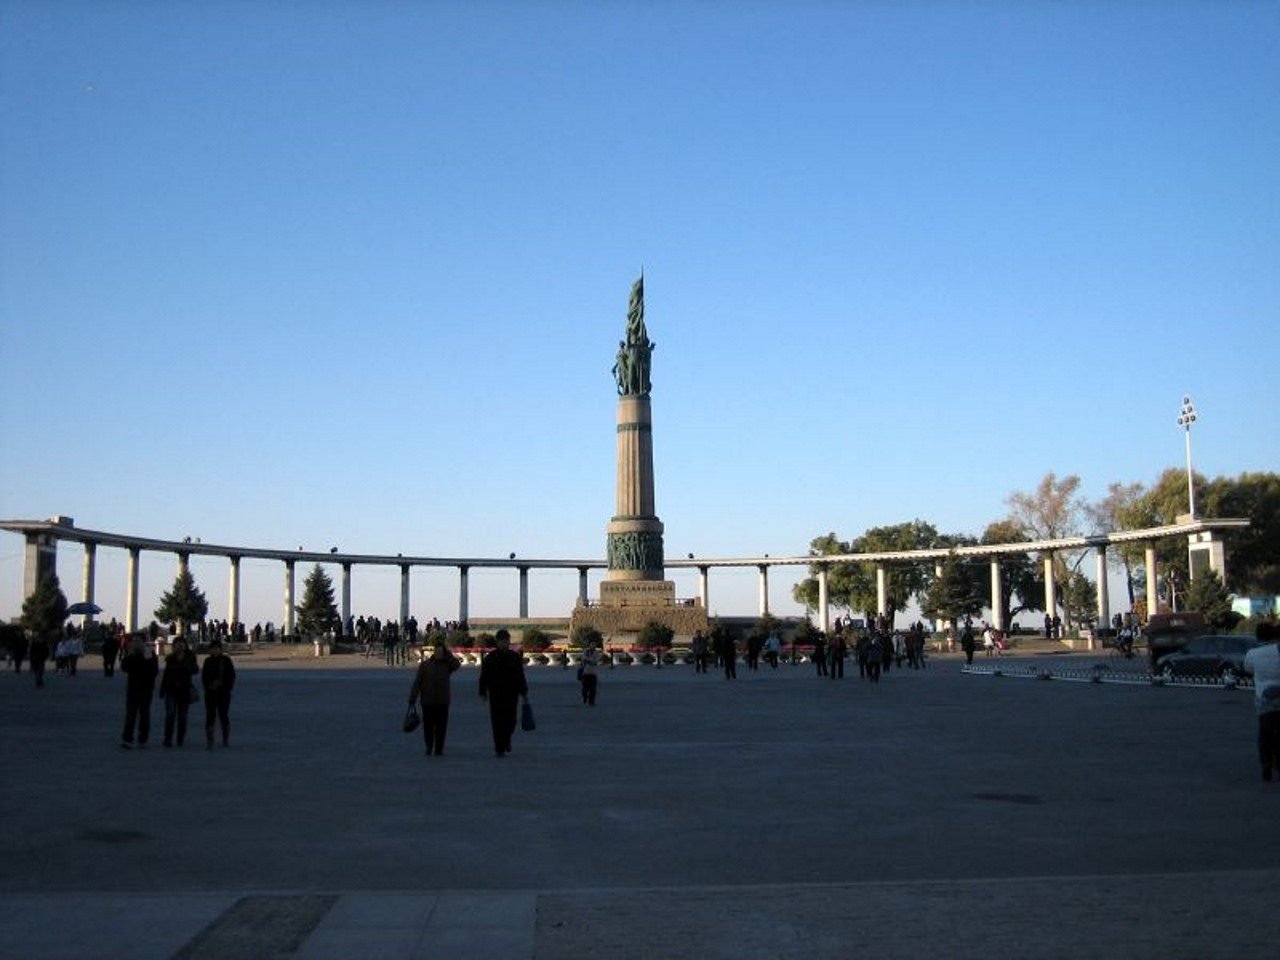 Harbin-Flood Control Monument